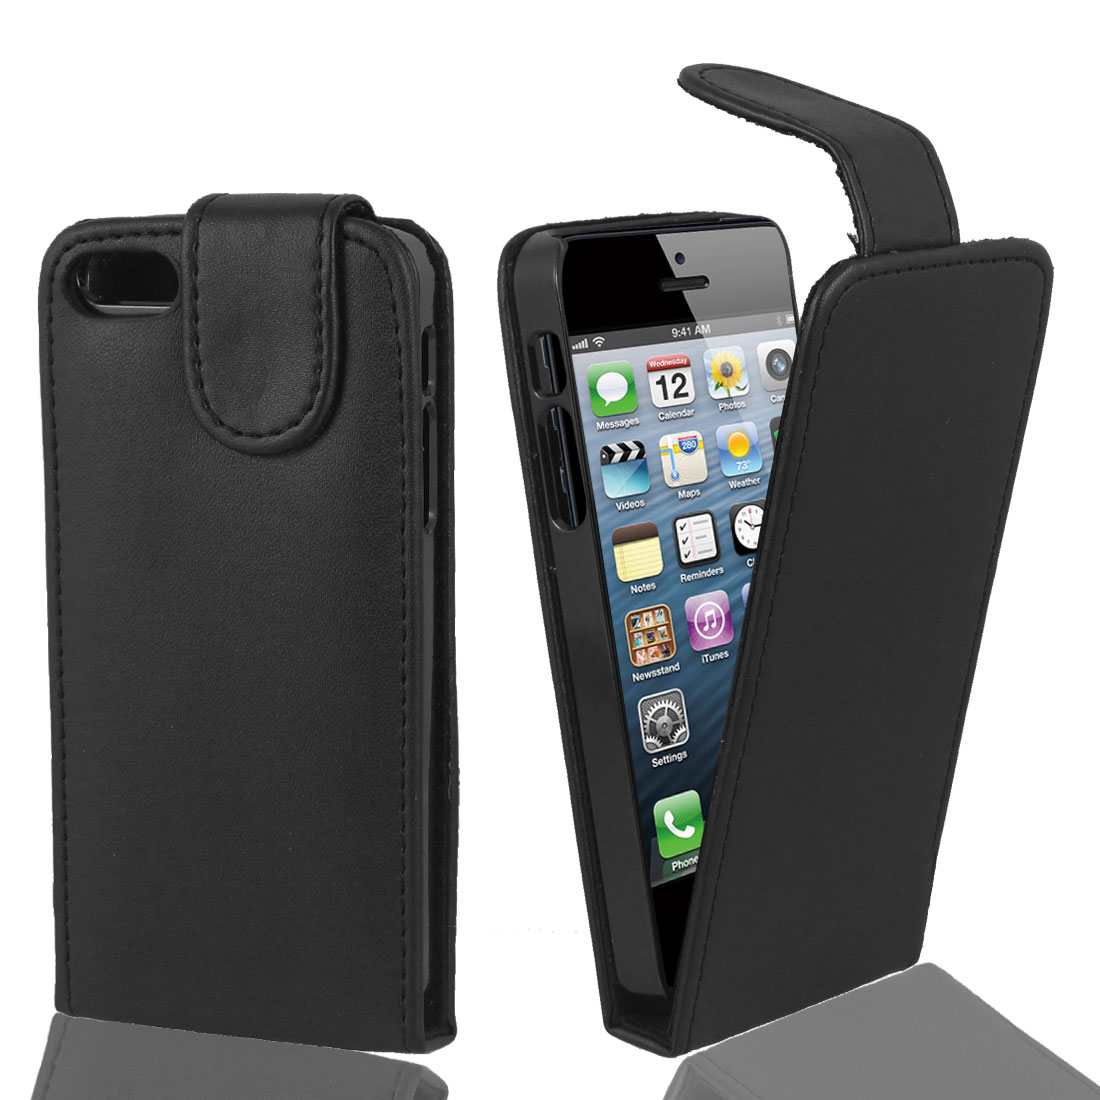 Magnetic Flip Faux Leather Case Cover Pouch Black for iPhone 5 5G